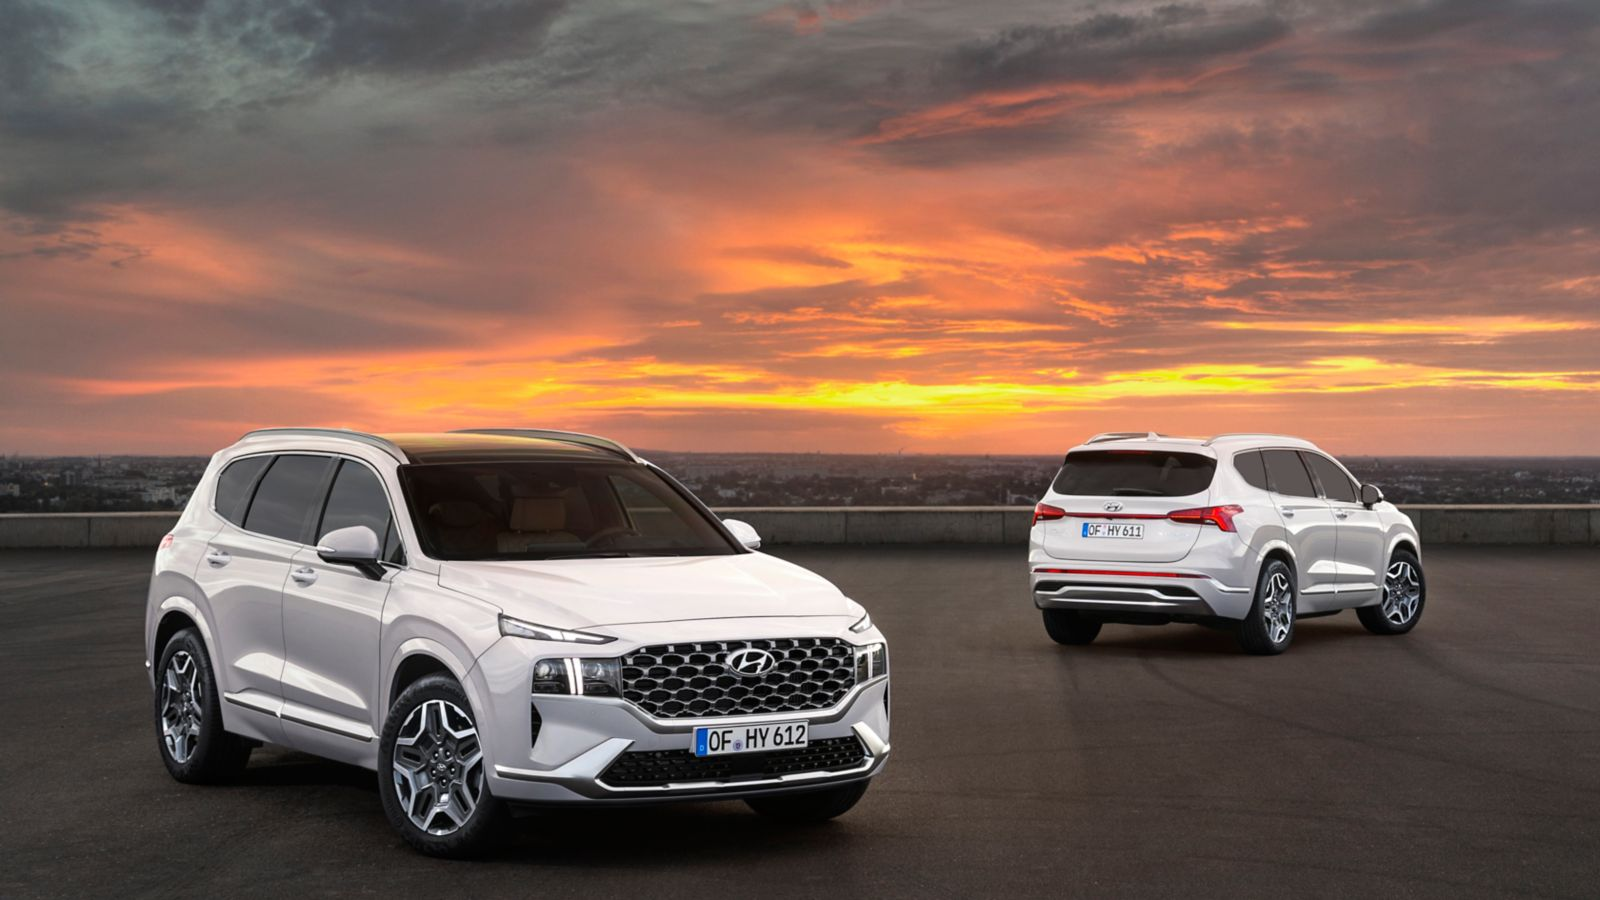 Two new Hyundai Santa Fe SUVs picture at sunset from the front and rear.